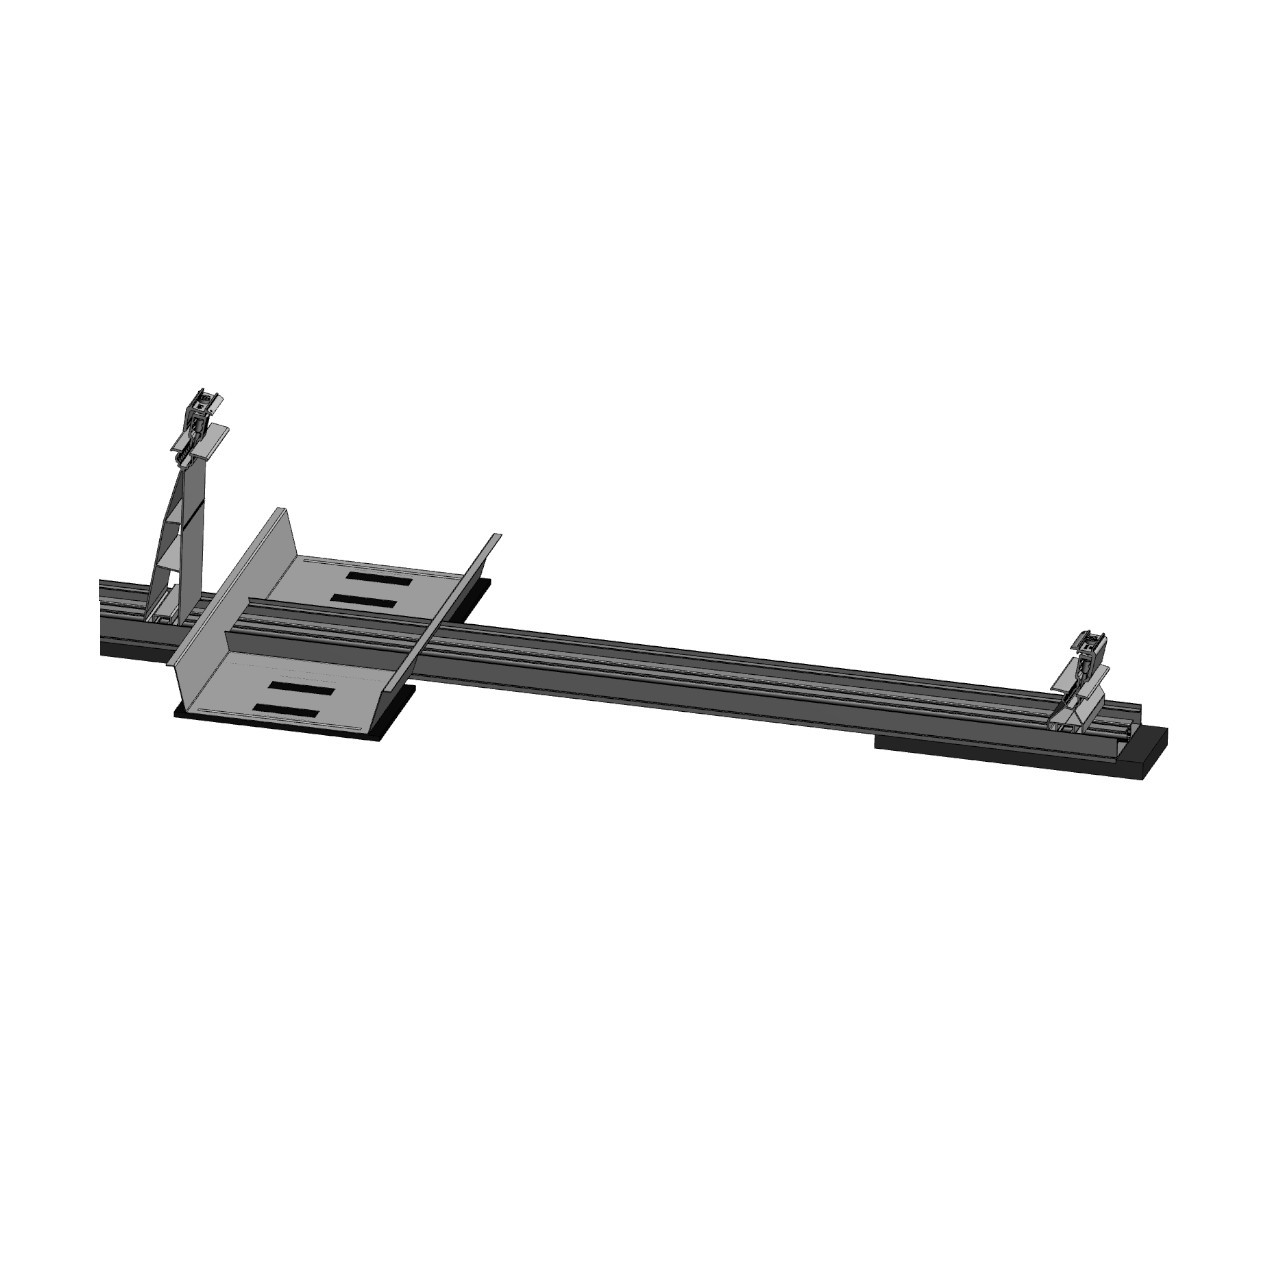 FixGrid10Plus - South - Front Rear Support Ballast